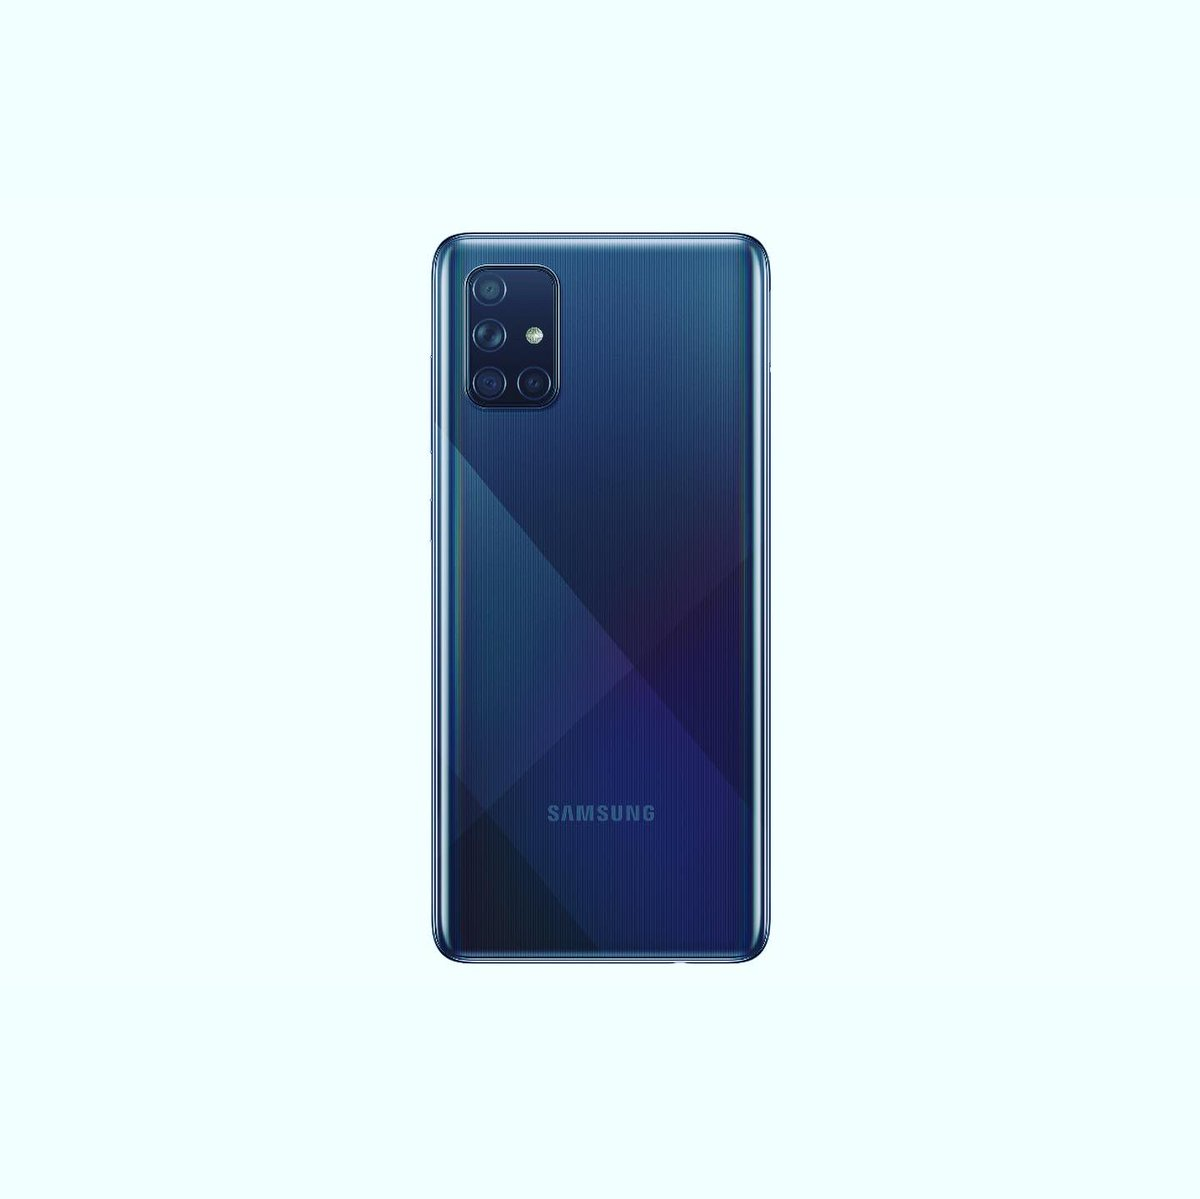 Another A series beauty from Samsung launched in India.  This is Samsung A51. Sleek design & 64MP Camera.  Available: Feb 24 on all platforms.  Storage : 8GB/ 128GB priced at ₹29,999/-. #samsung #samsungAseries  #samsunga51 #newlaunch  @samsungindia @samsungmobilepic.twitter.com/W1lV1X2IXT